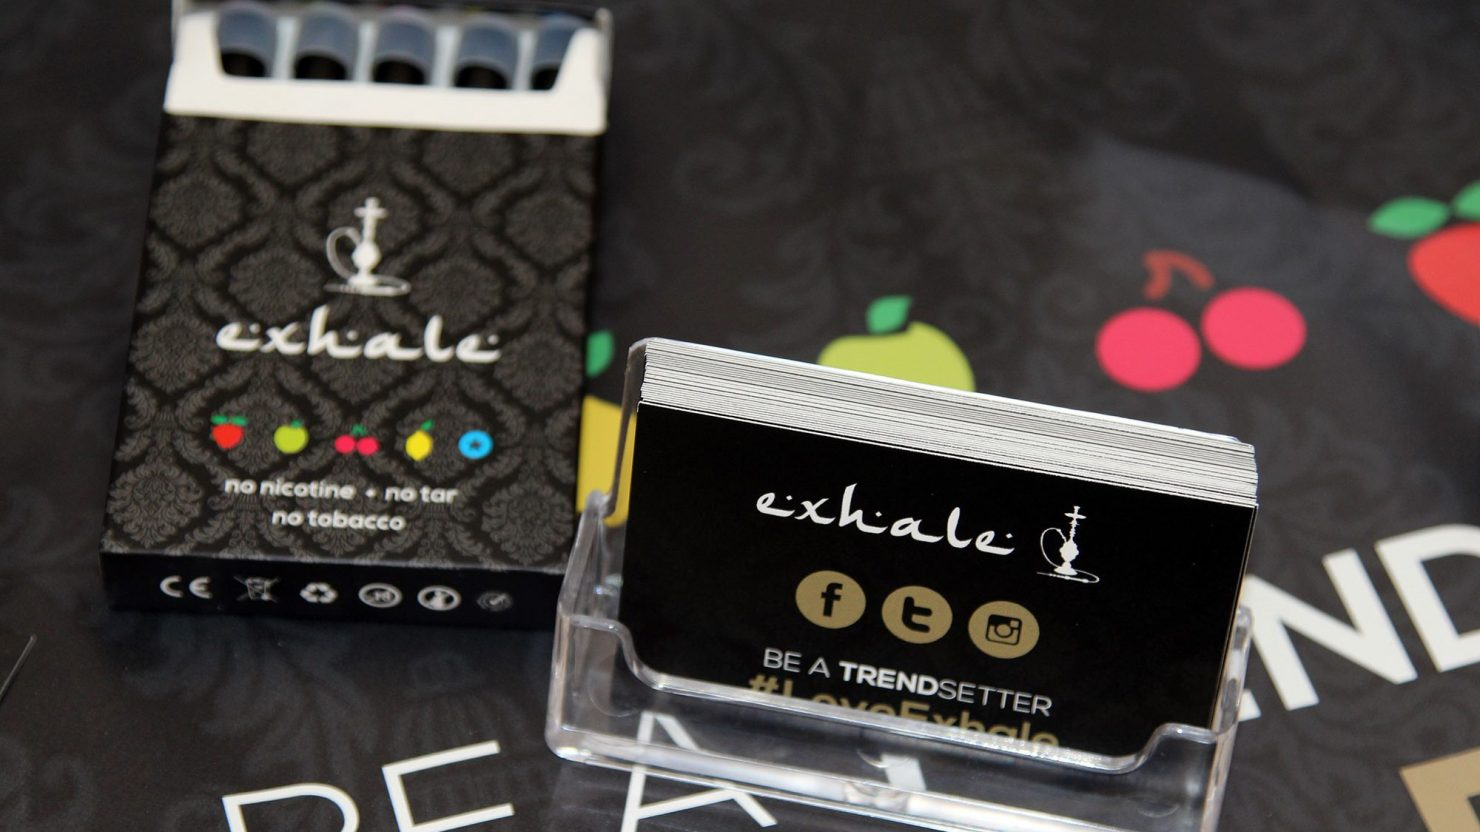 business cards and packaging design for exhale shisha pens